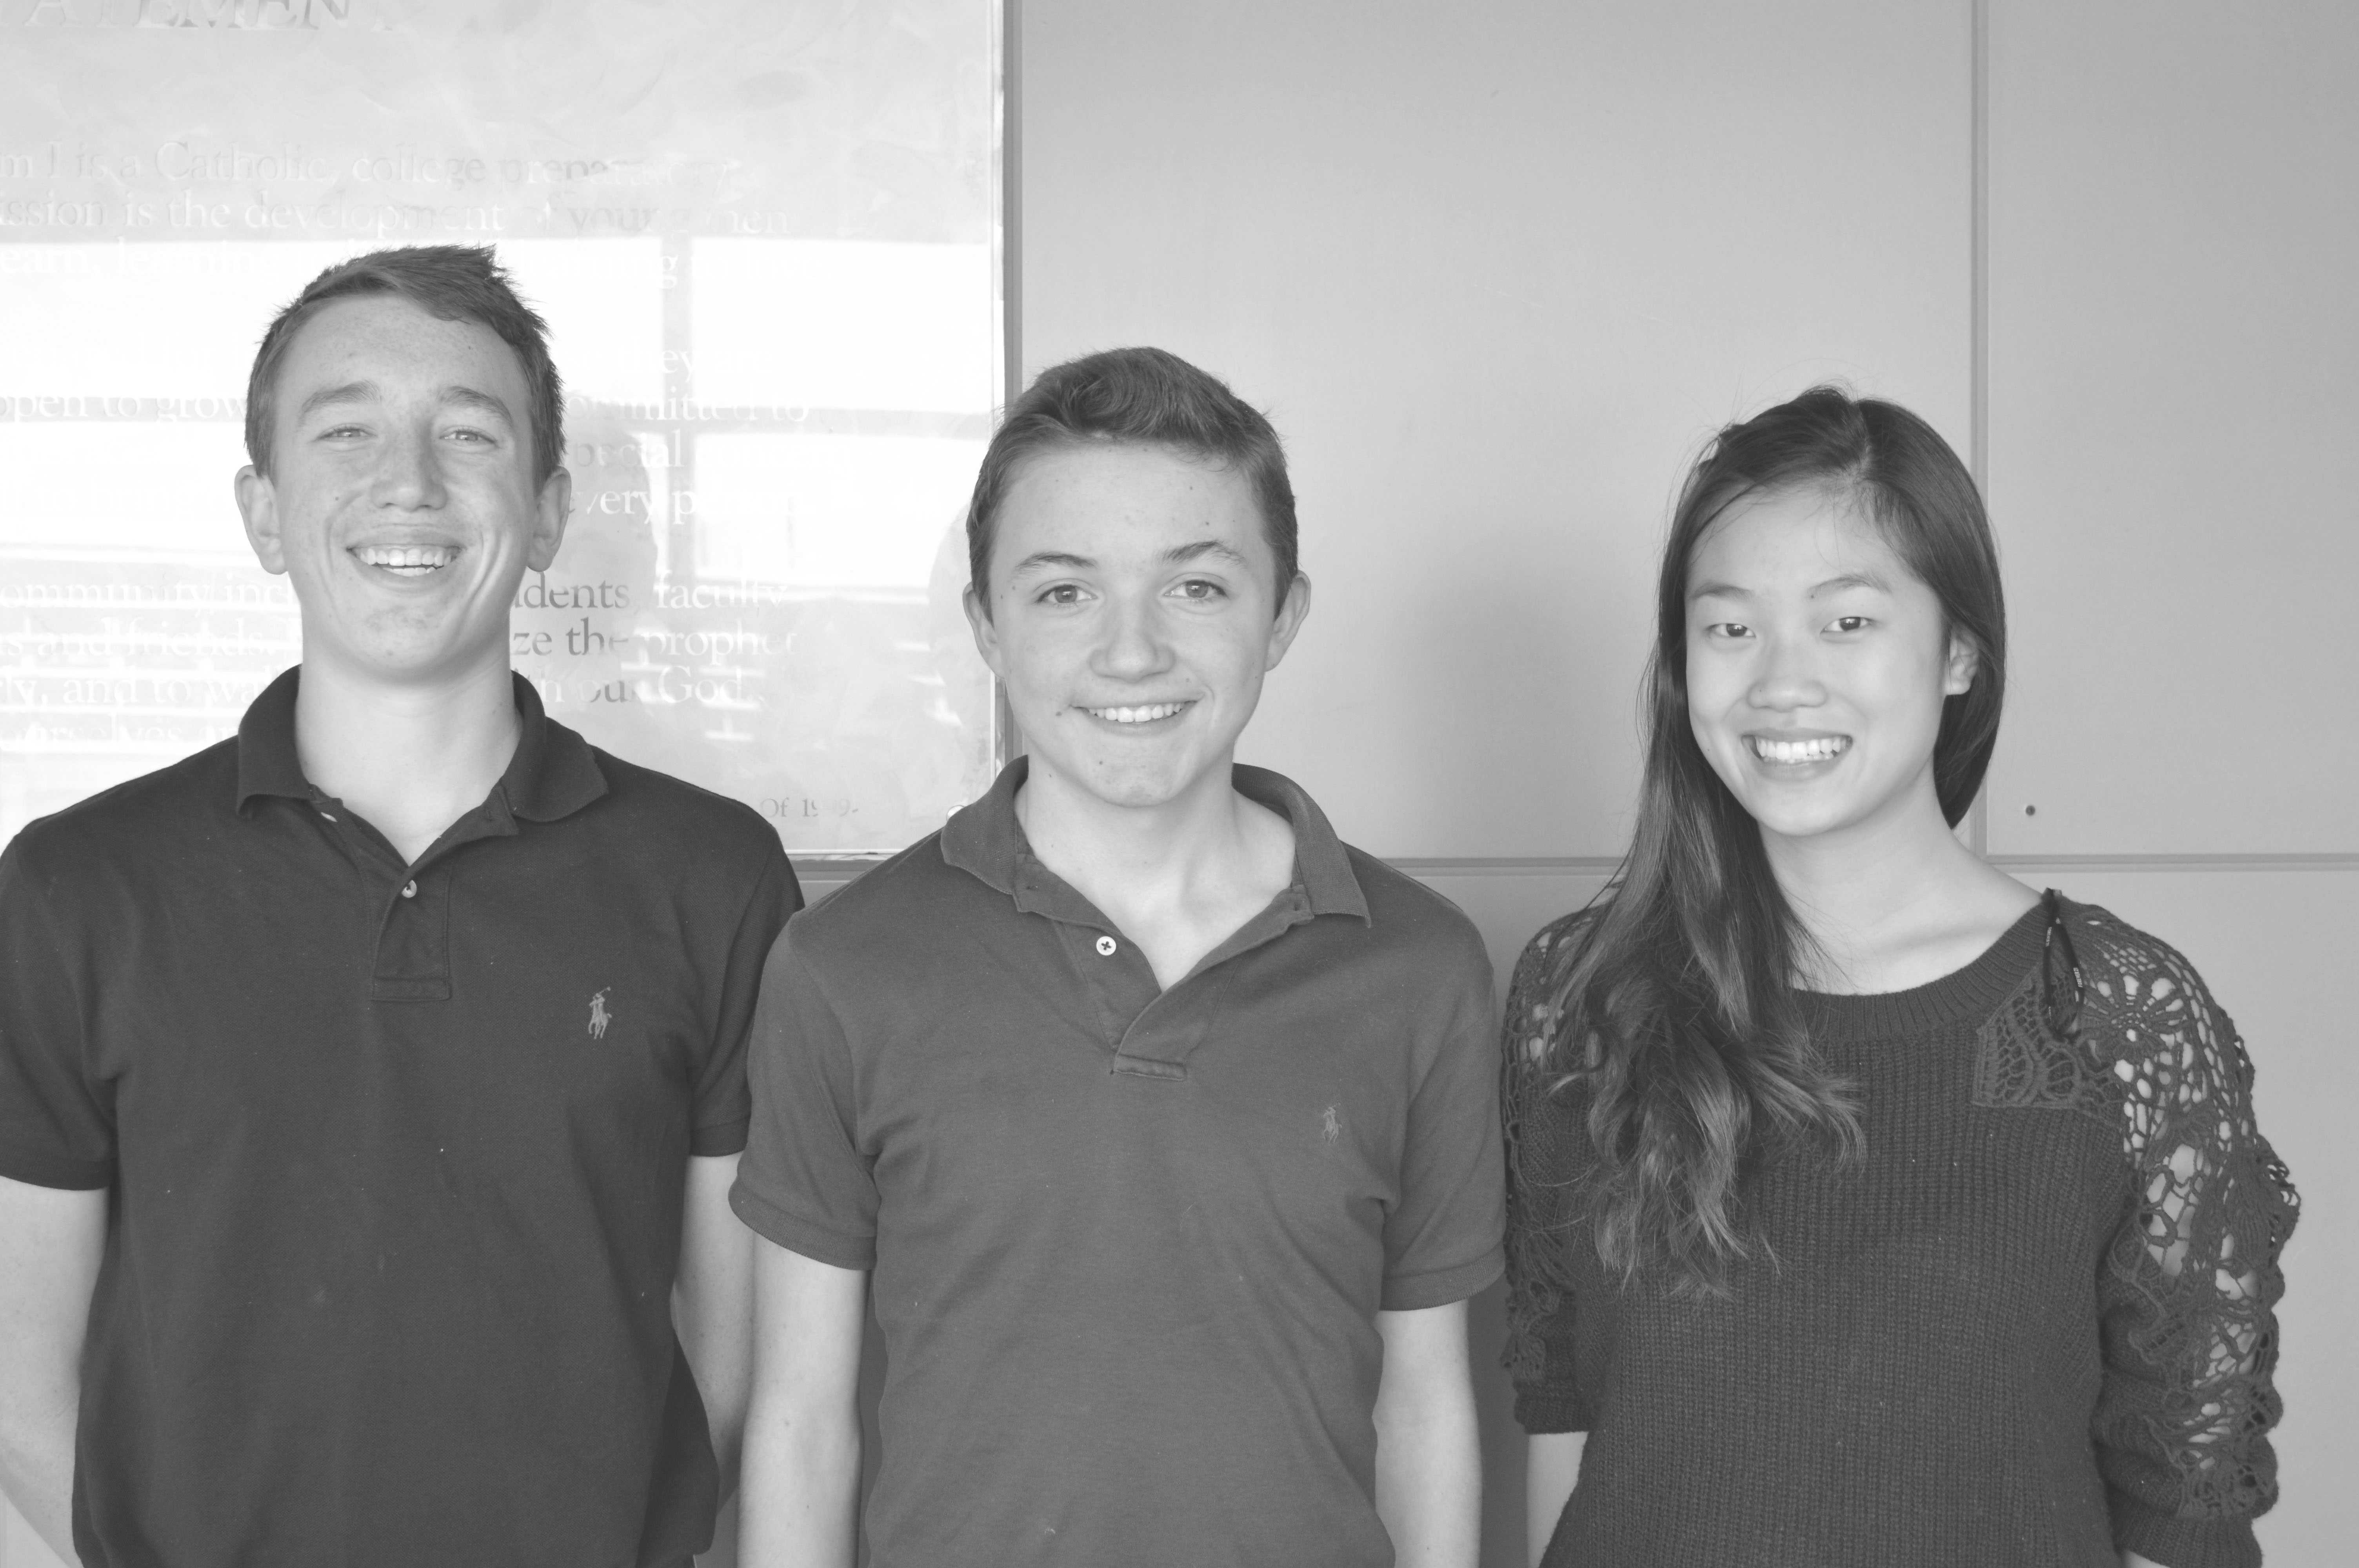 The Freshman ASB President Hudson Patterson (center) and Executives Angela Lin (right) and Will Foster (left)